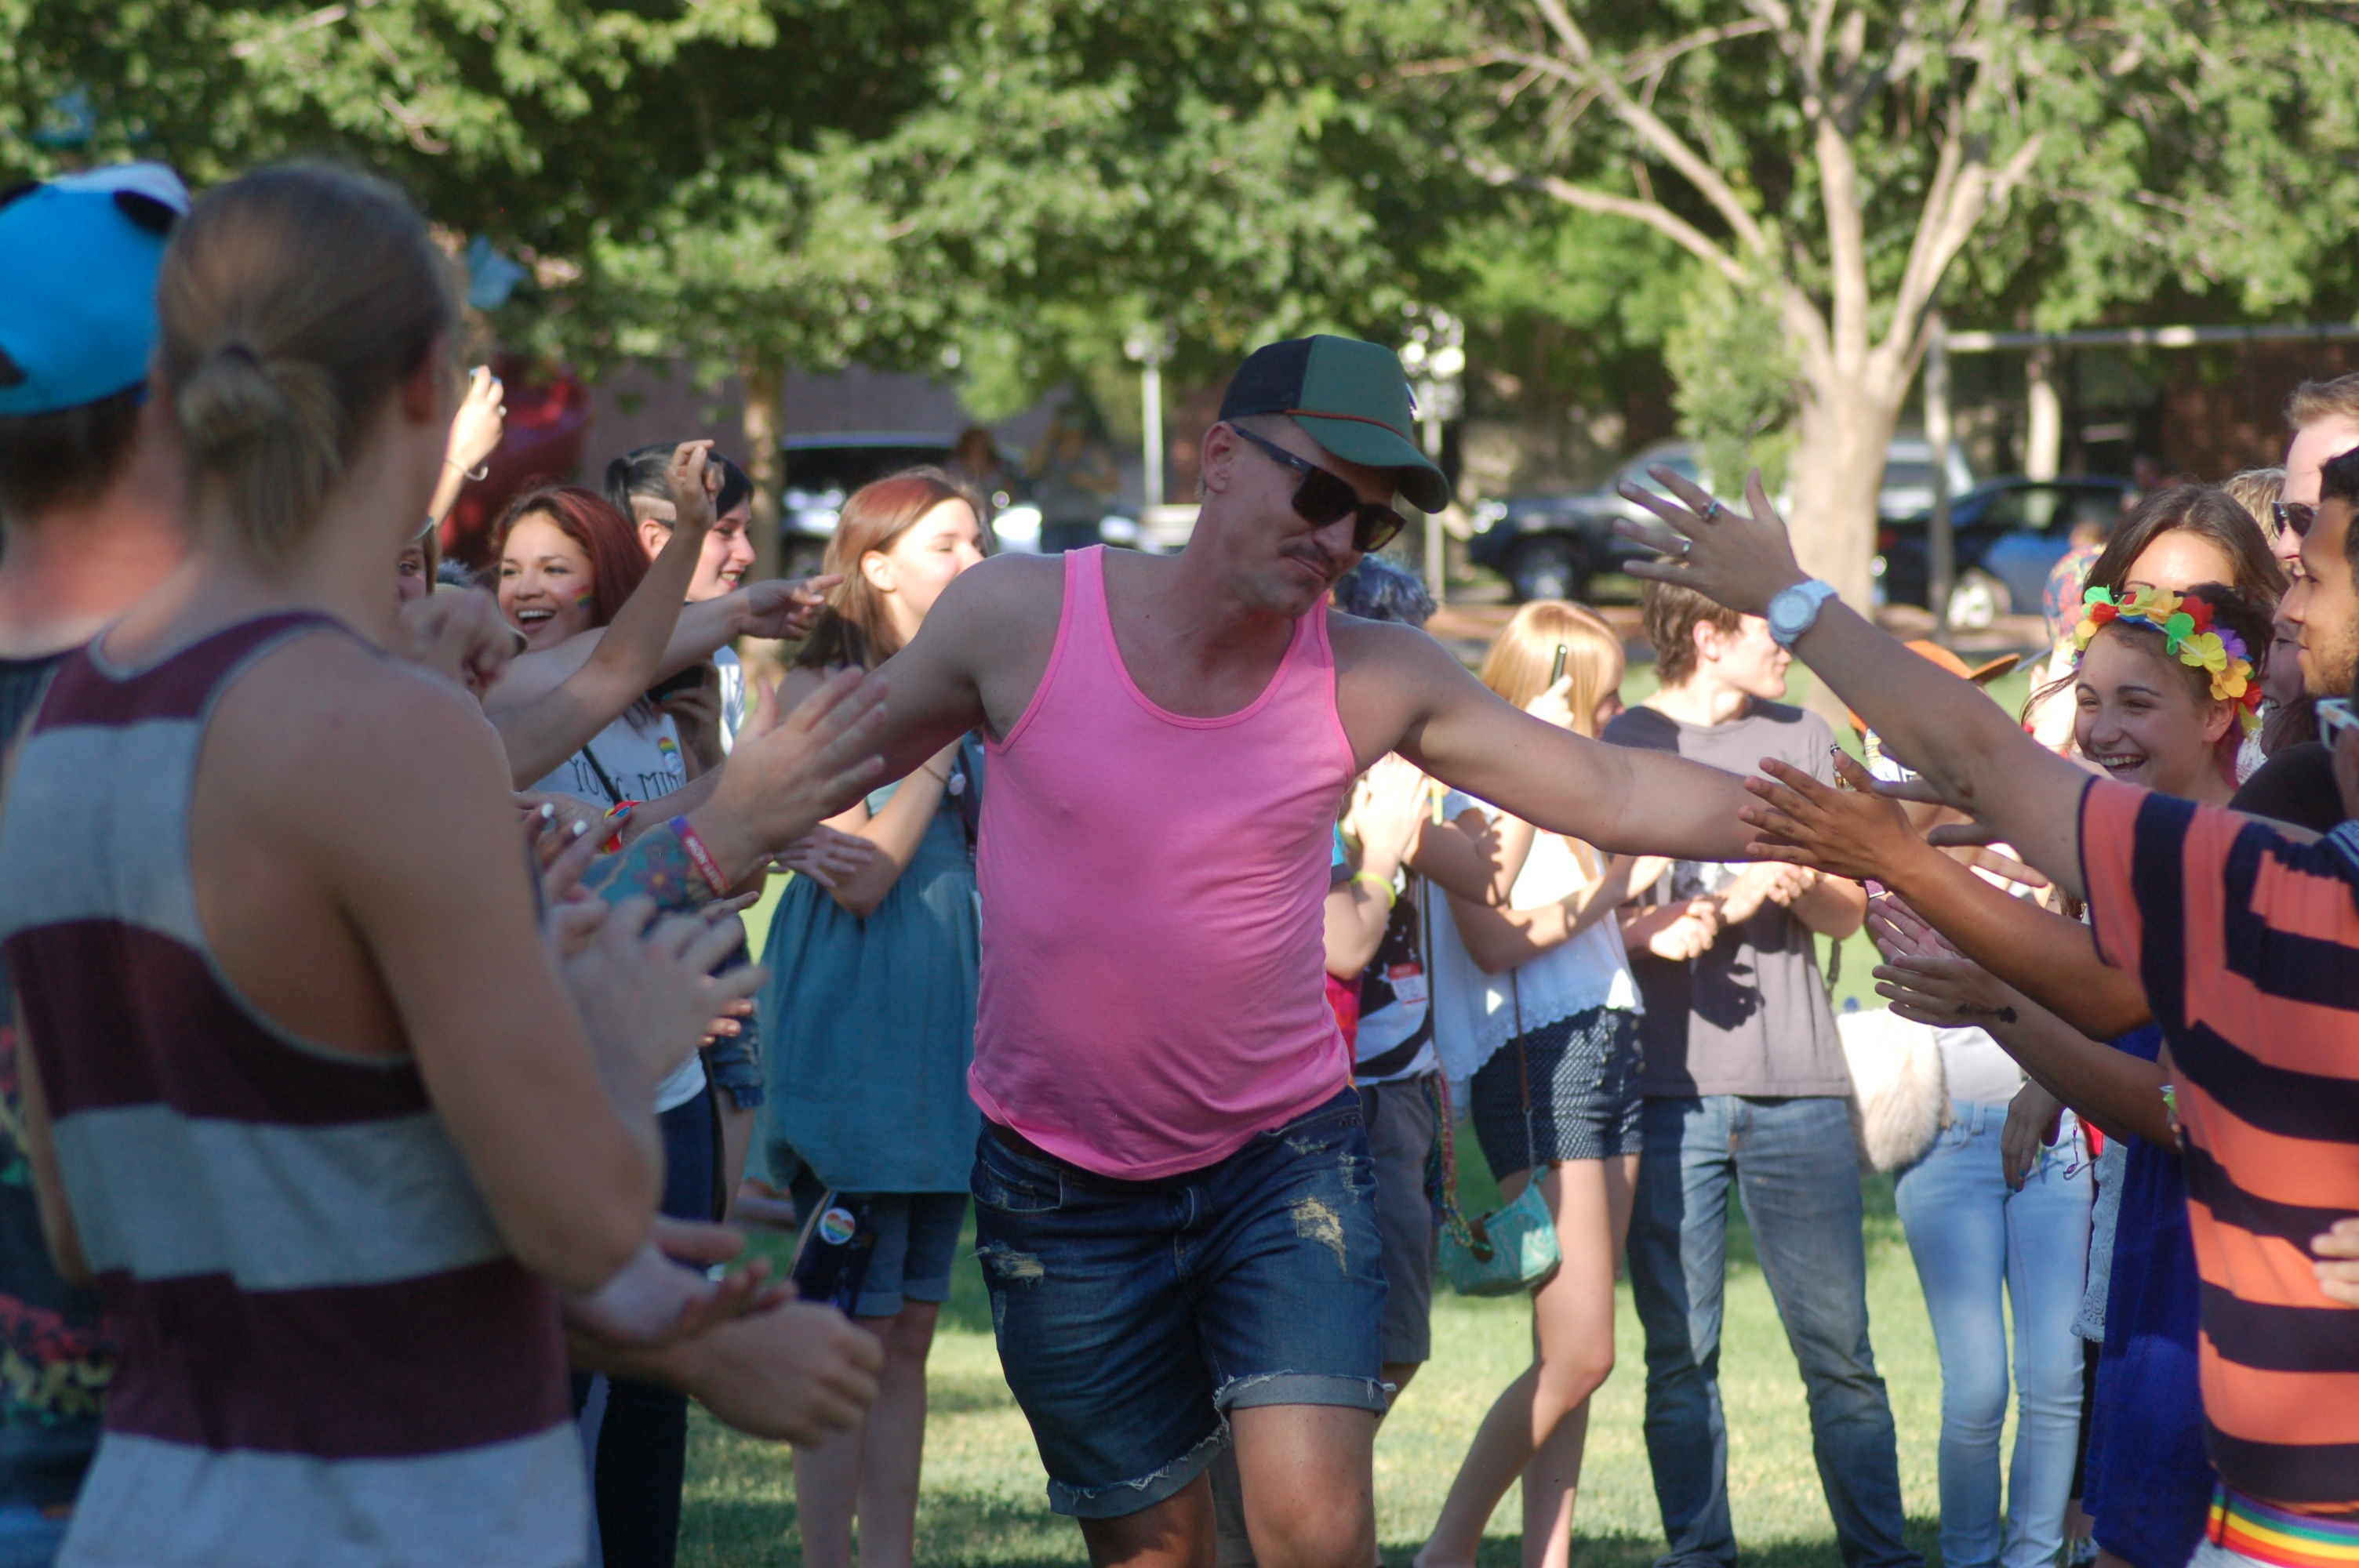 Revelers at the St. George gay pride event participate in a conga line parade at Vernon Worthen Park, St. George, Utah, June 25, 2016 | Photo by Hollie Reina, St. George News